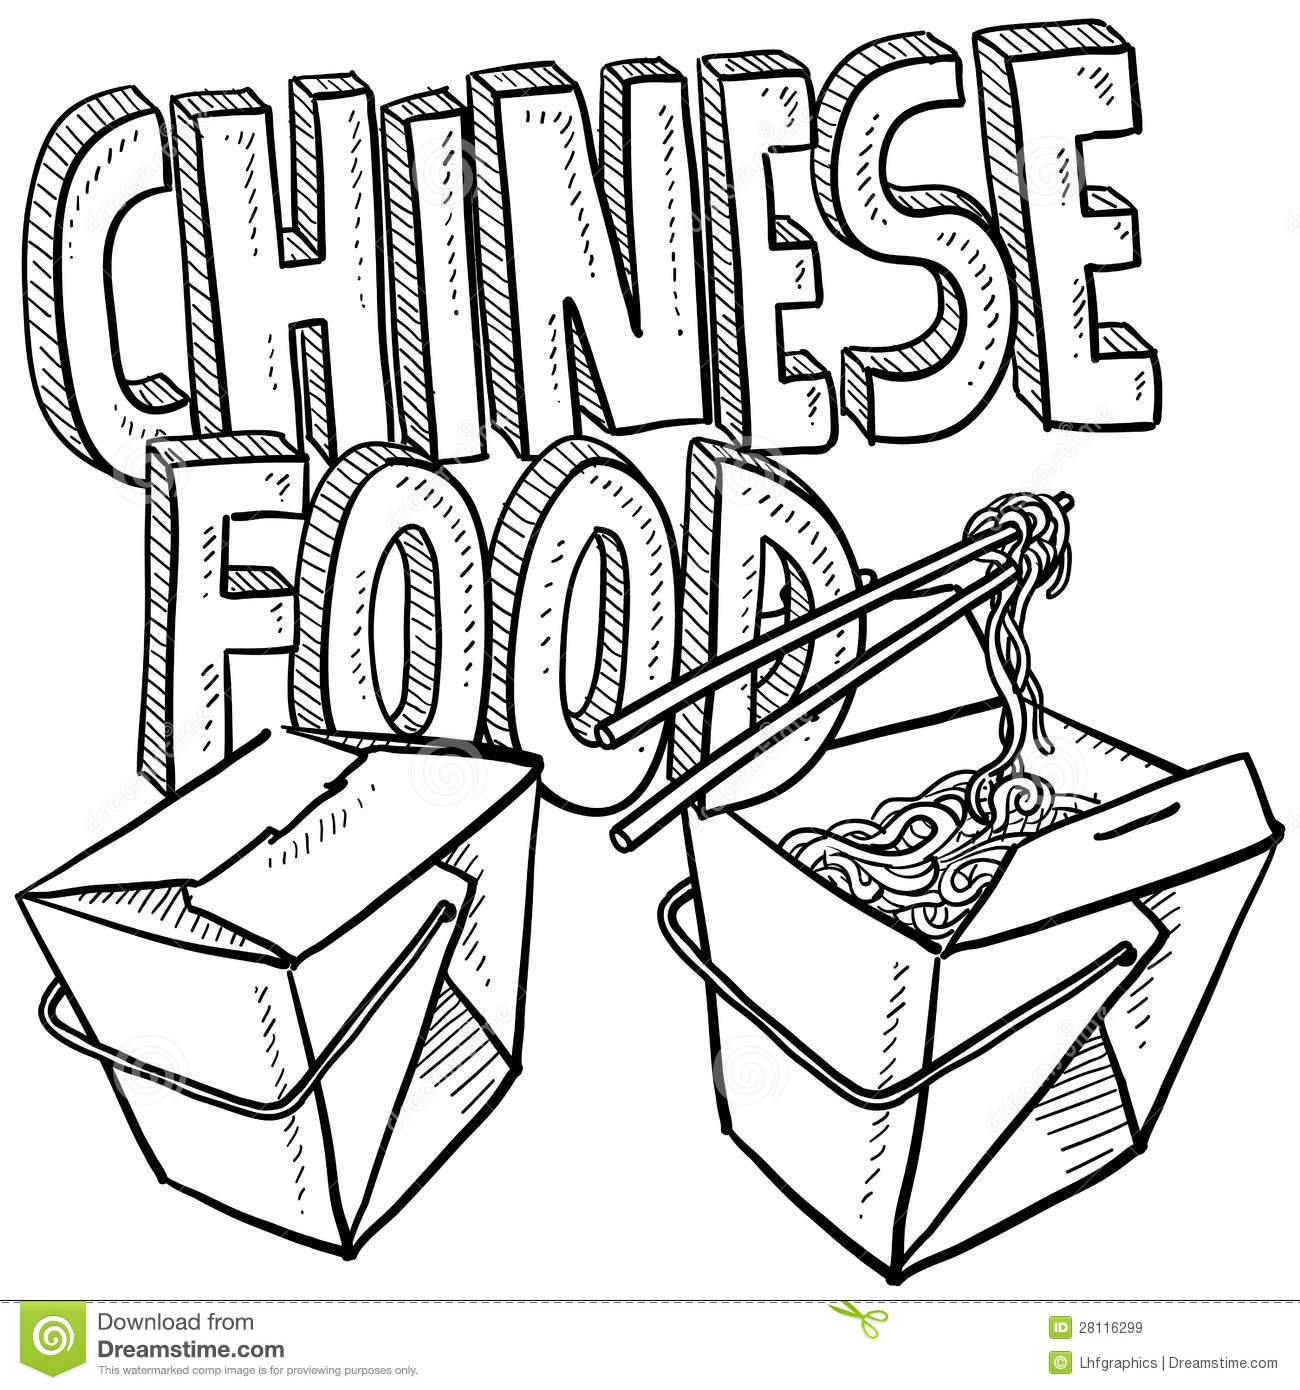 Chinese Food Sketch Royalty Free Stock Images - Image ...